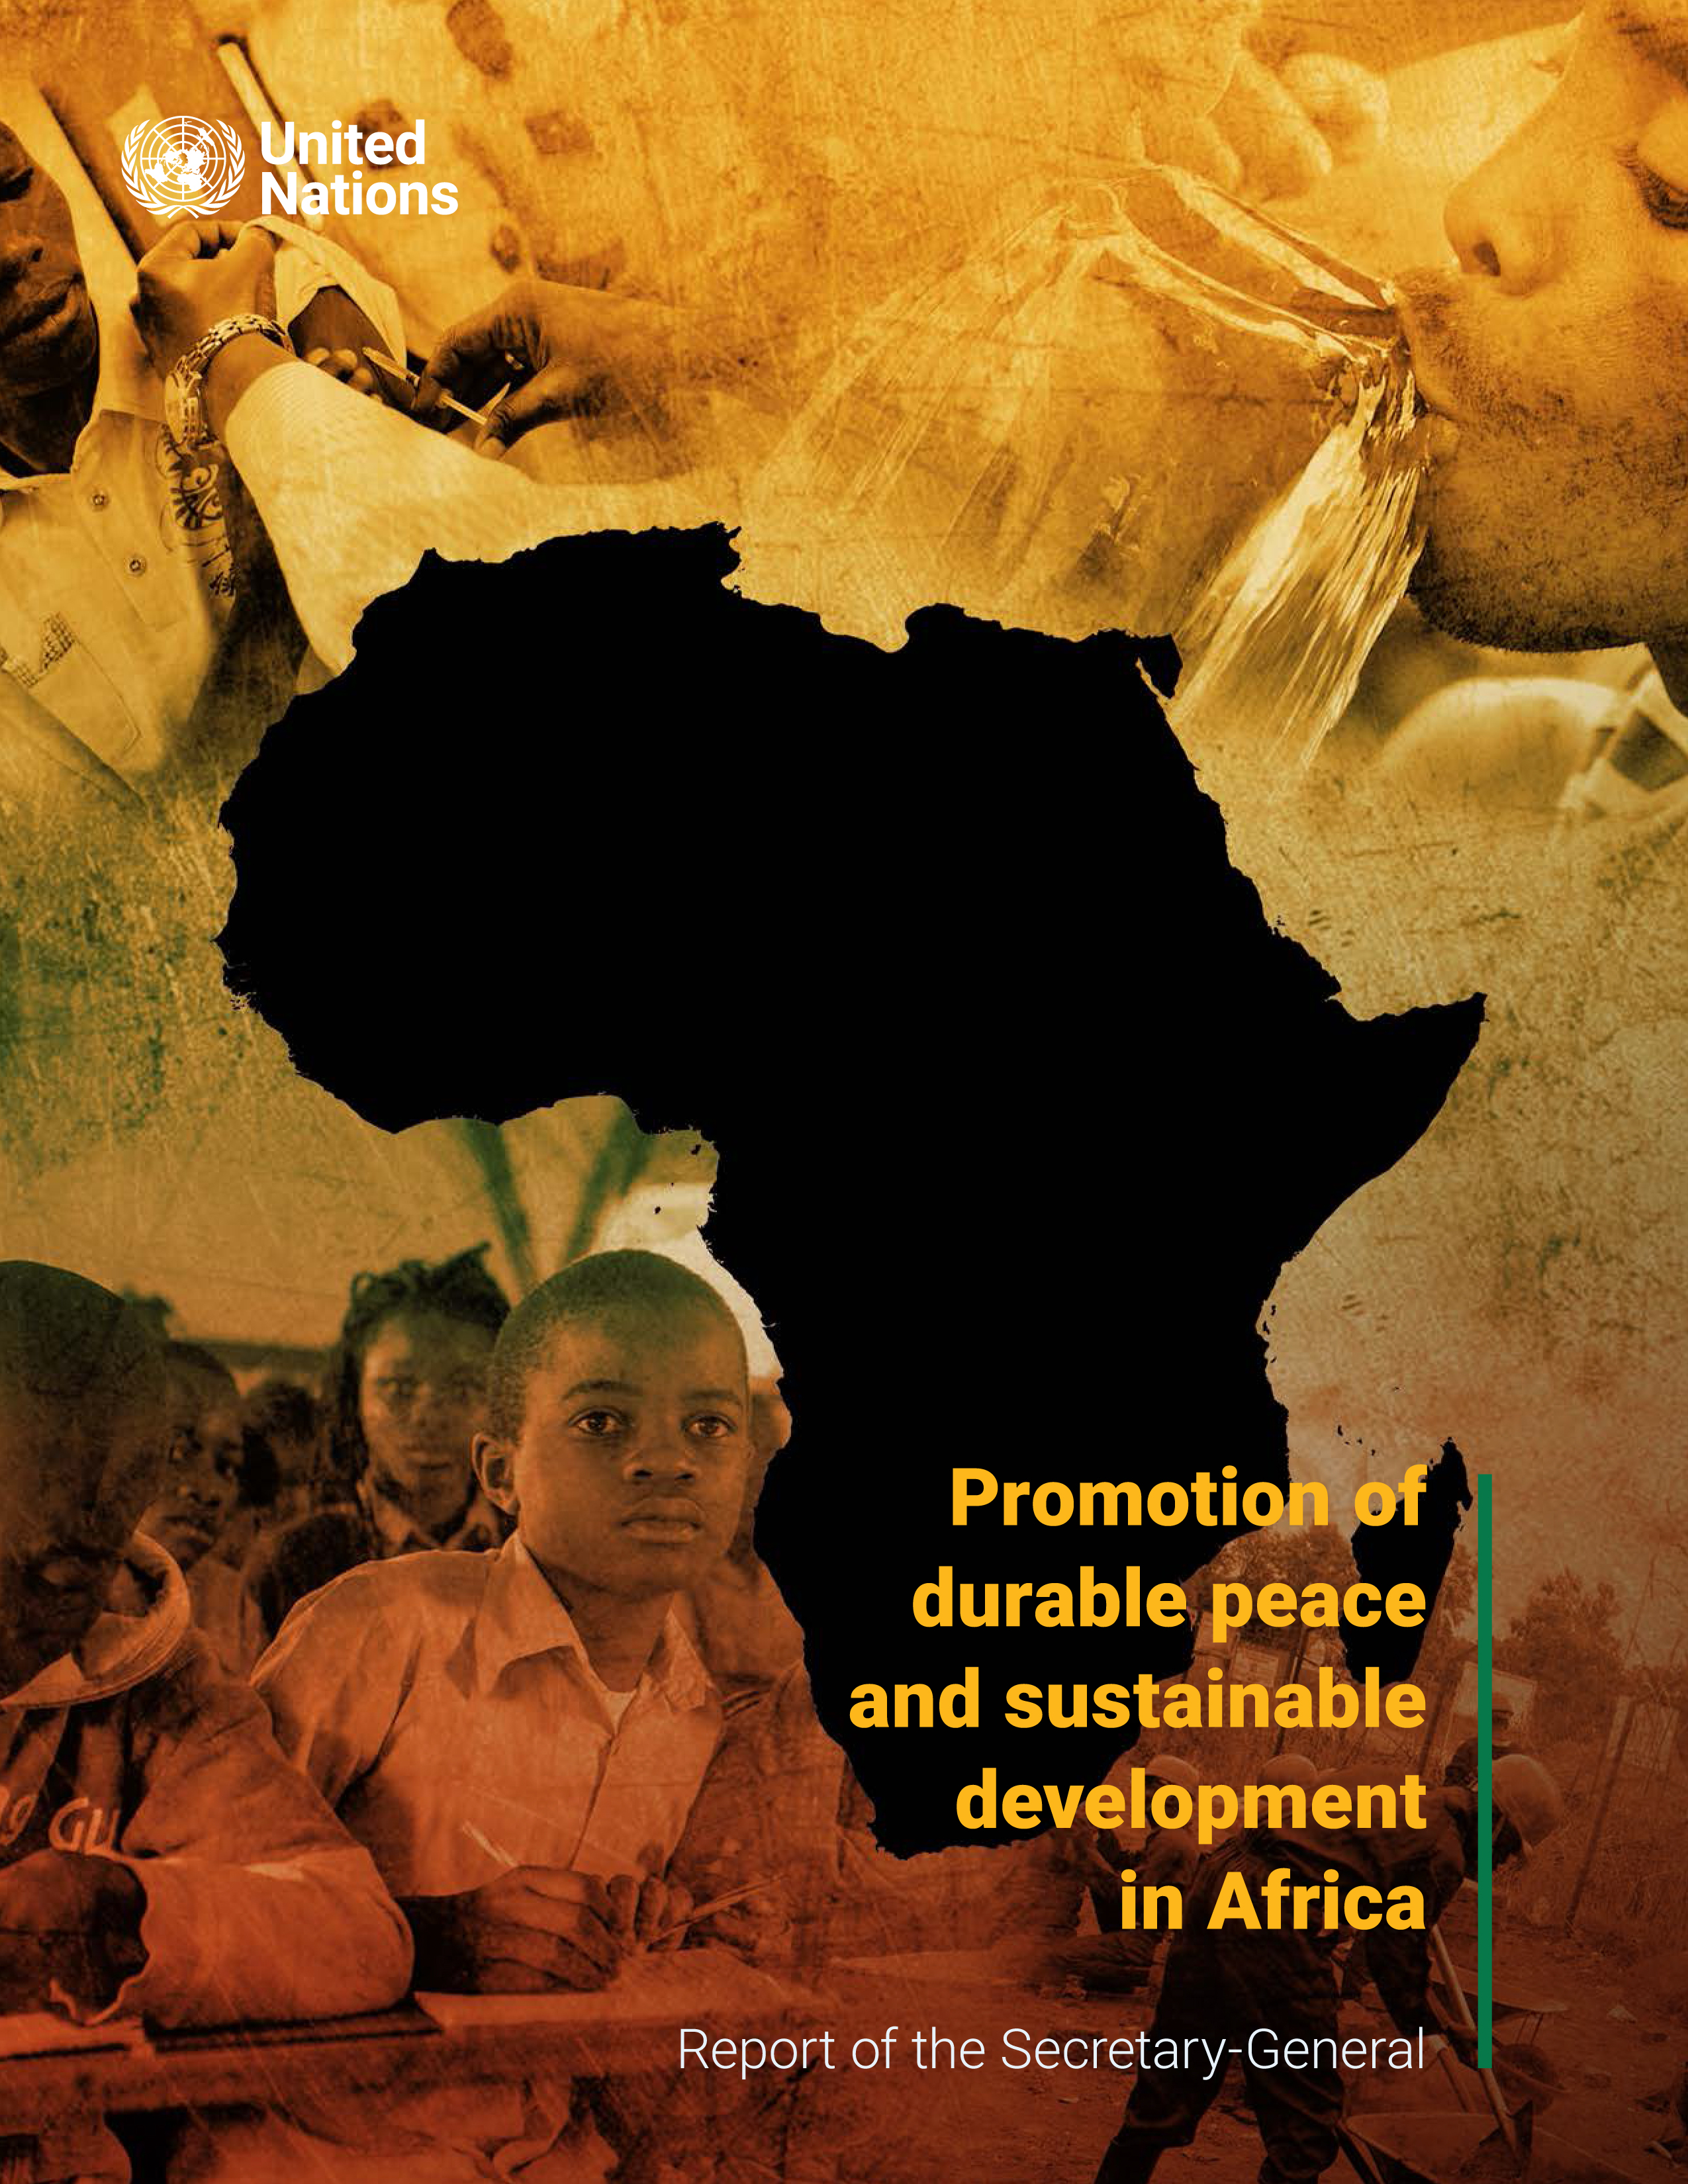 DURABLE PEACE AND SUST DEV AFRICA